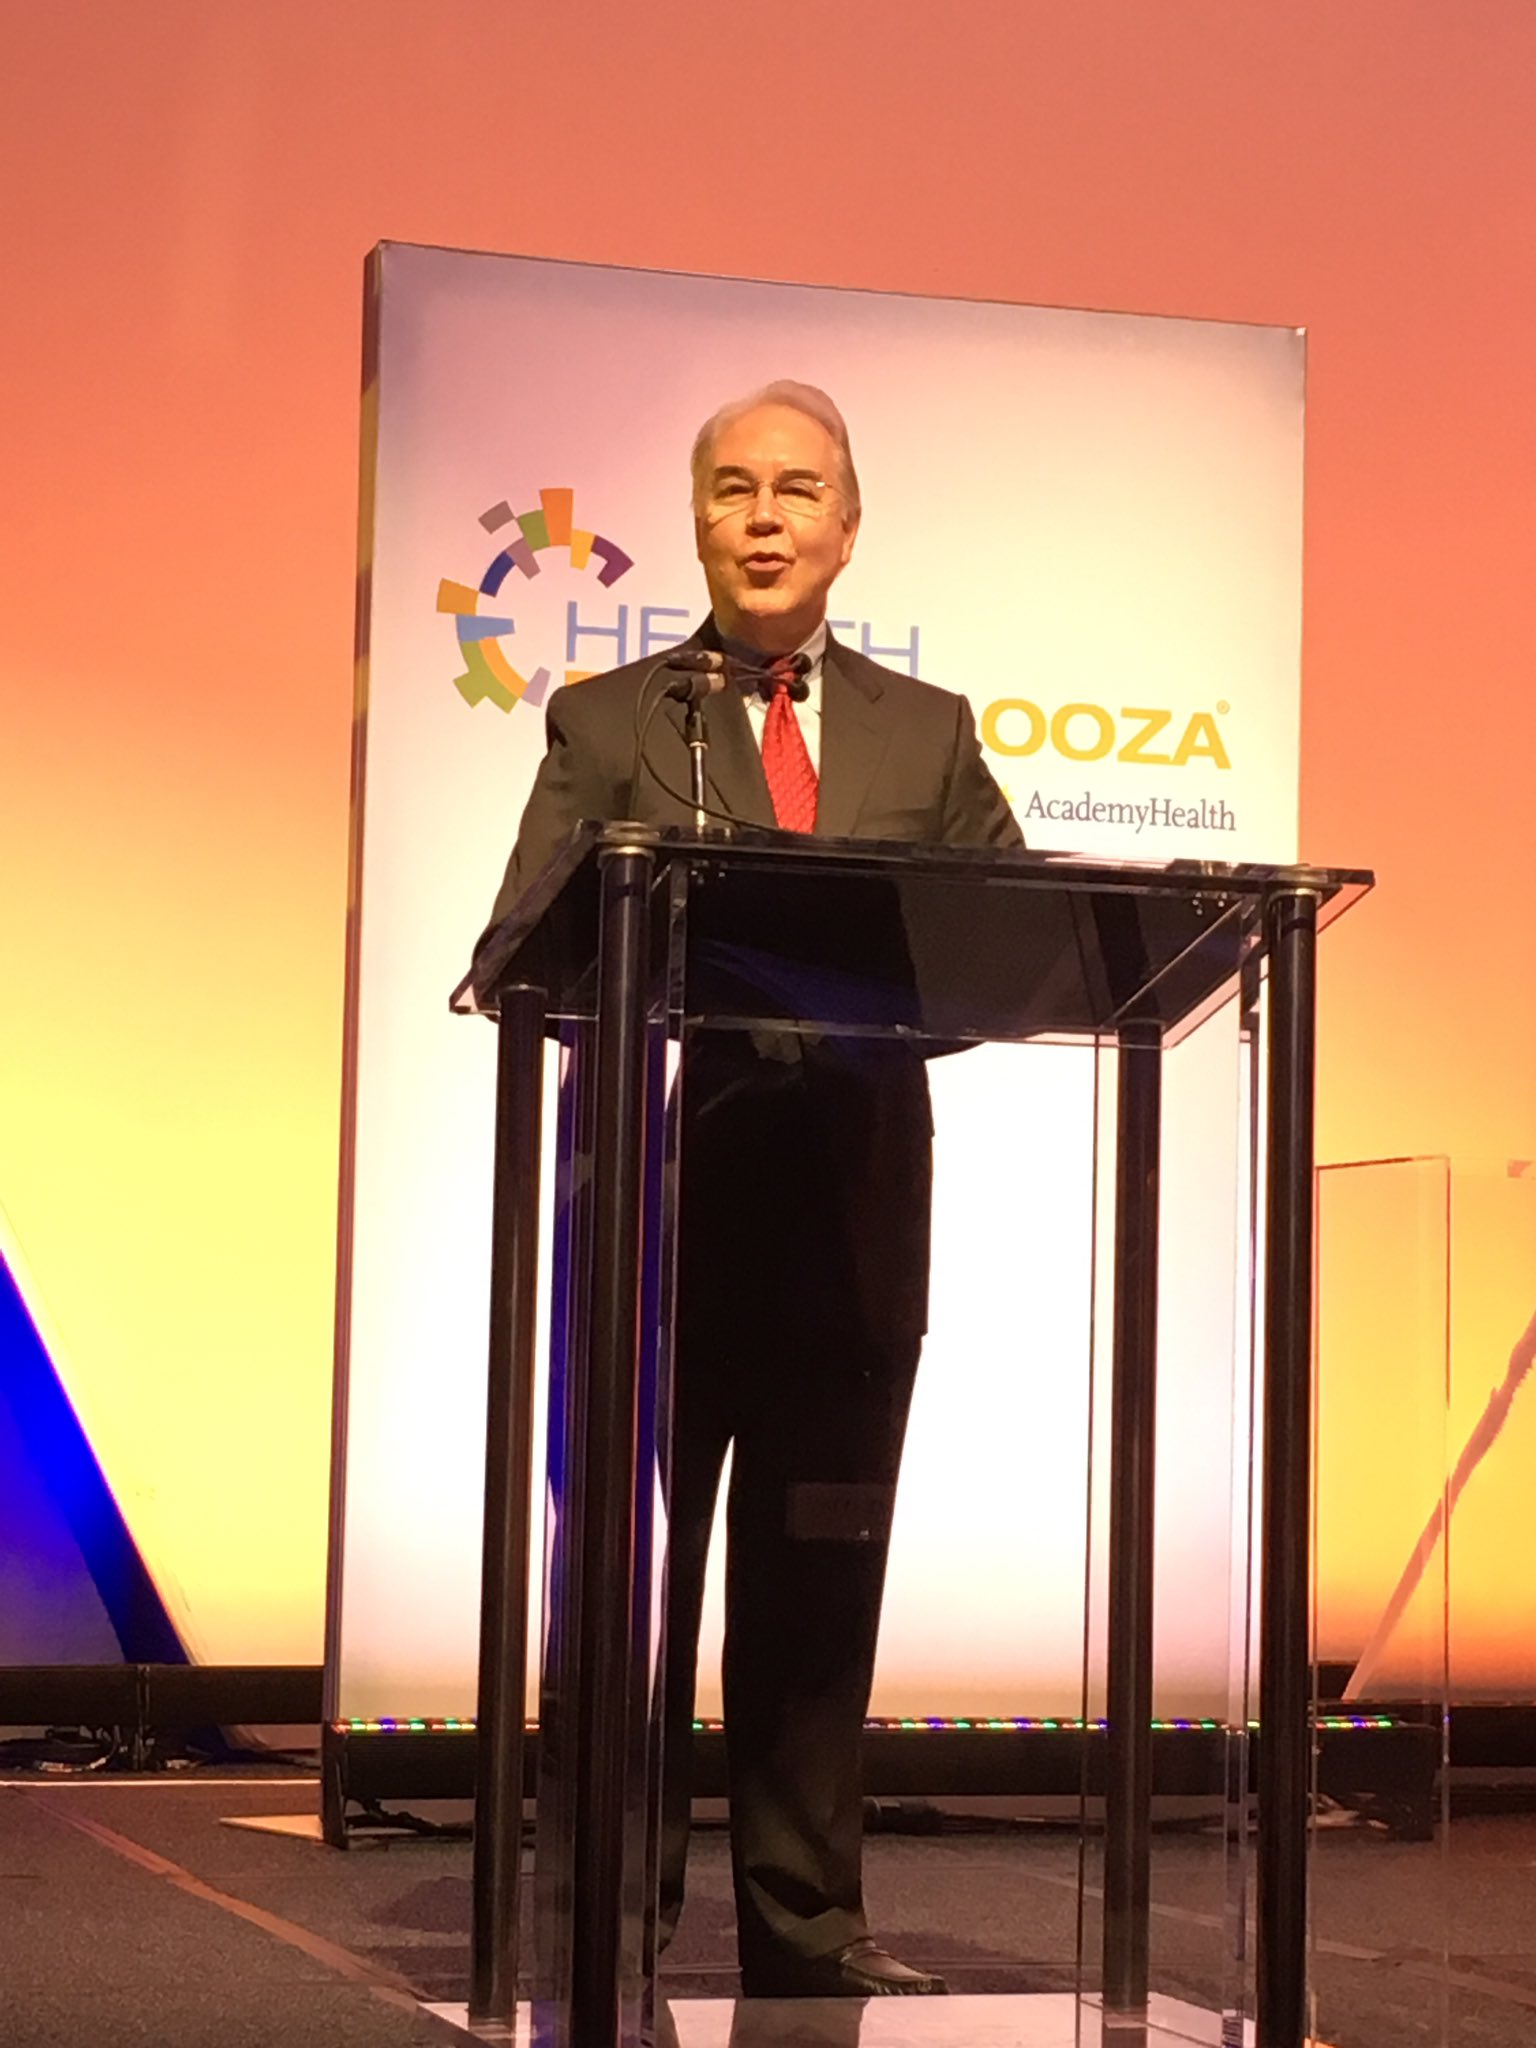 Now up at #hdpalooza is @SecPriceMD https://t.co/S8f6EncpDu